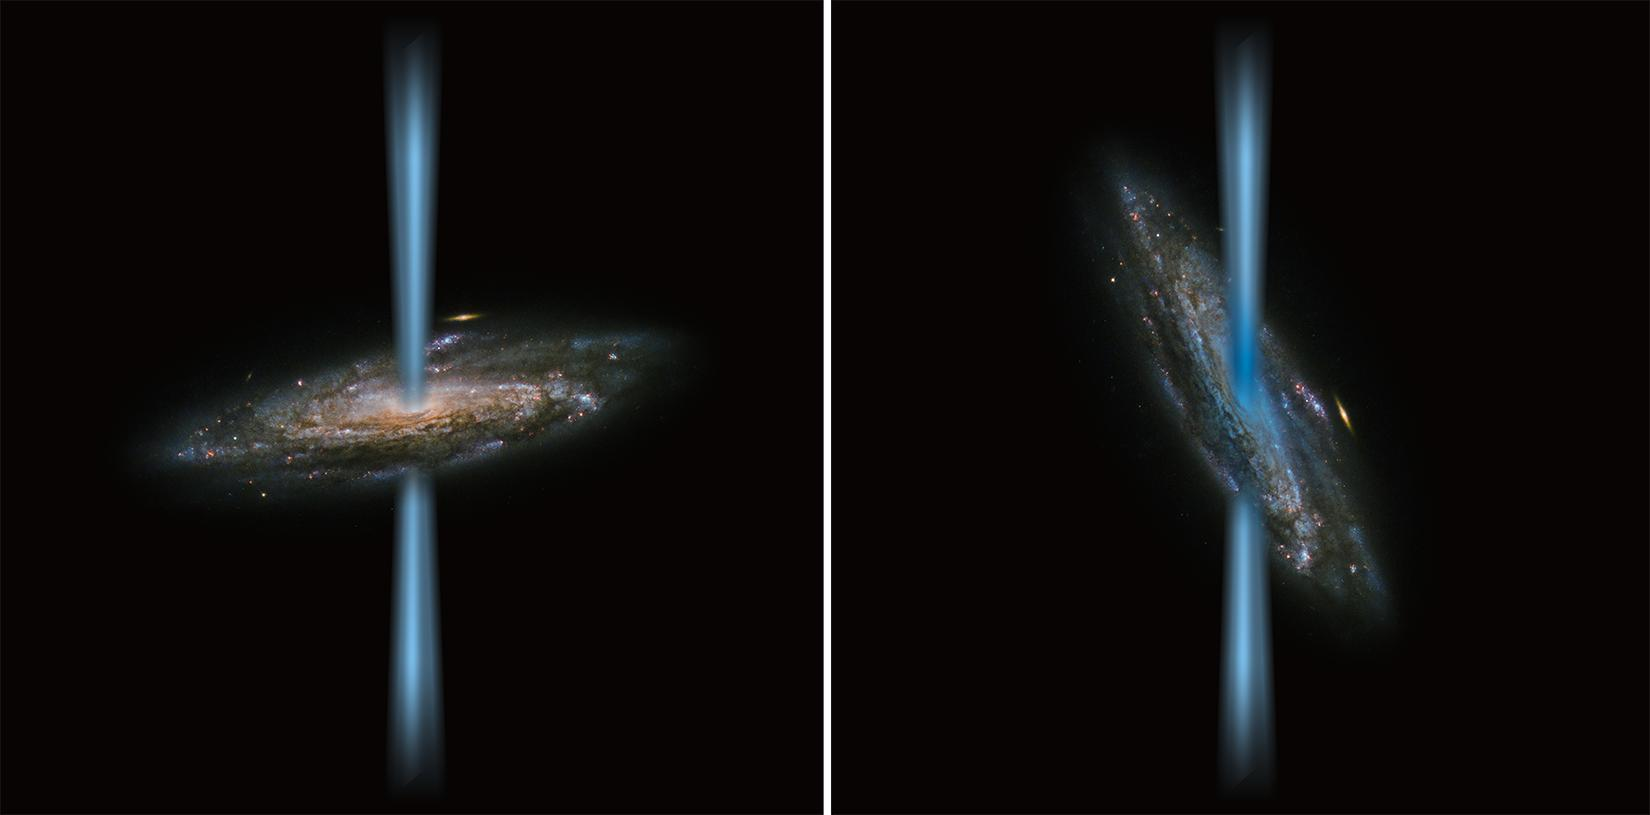 Artist's concept of a jet from an active black hole that is perpendicular to the host galaxy (left) compared to a jet that is launching directly into the galaxy (right) illustrated over an image of a spiral galaxy from the Hubble Space Telescope.